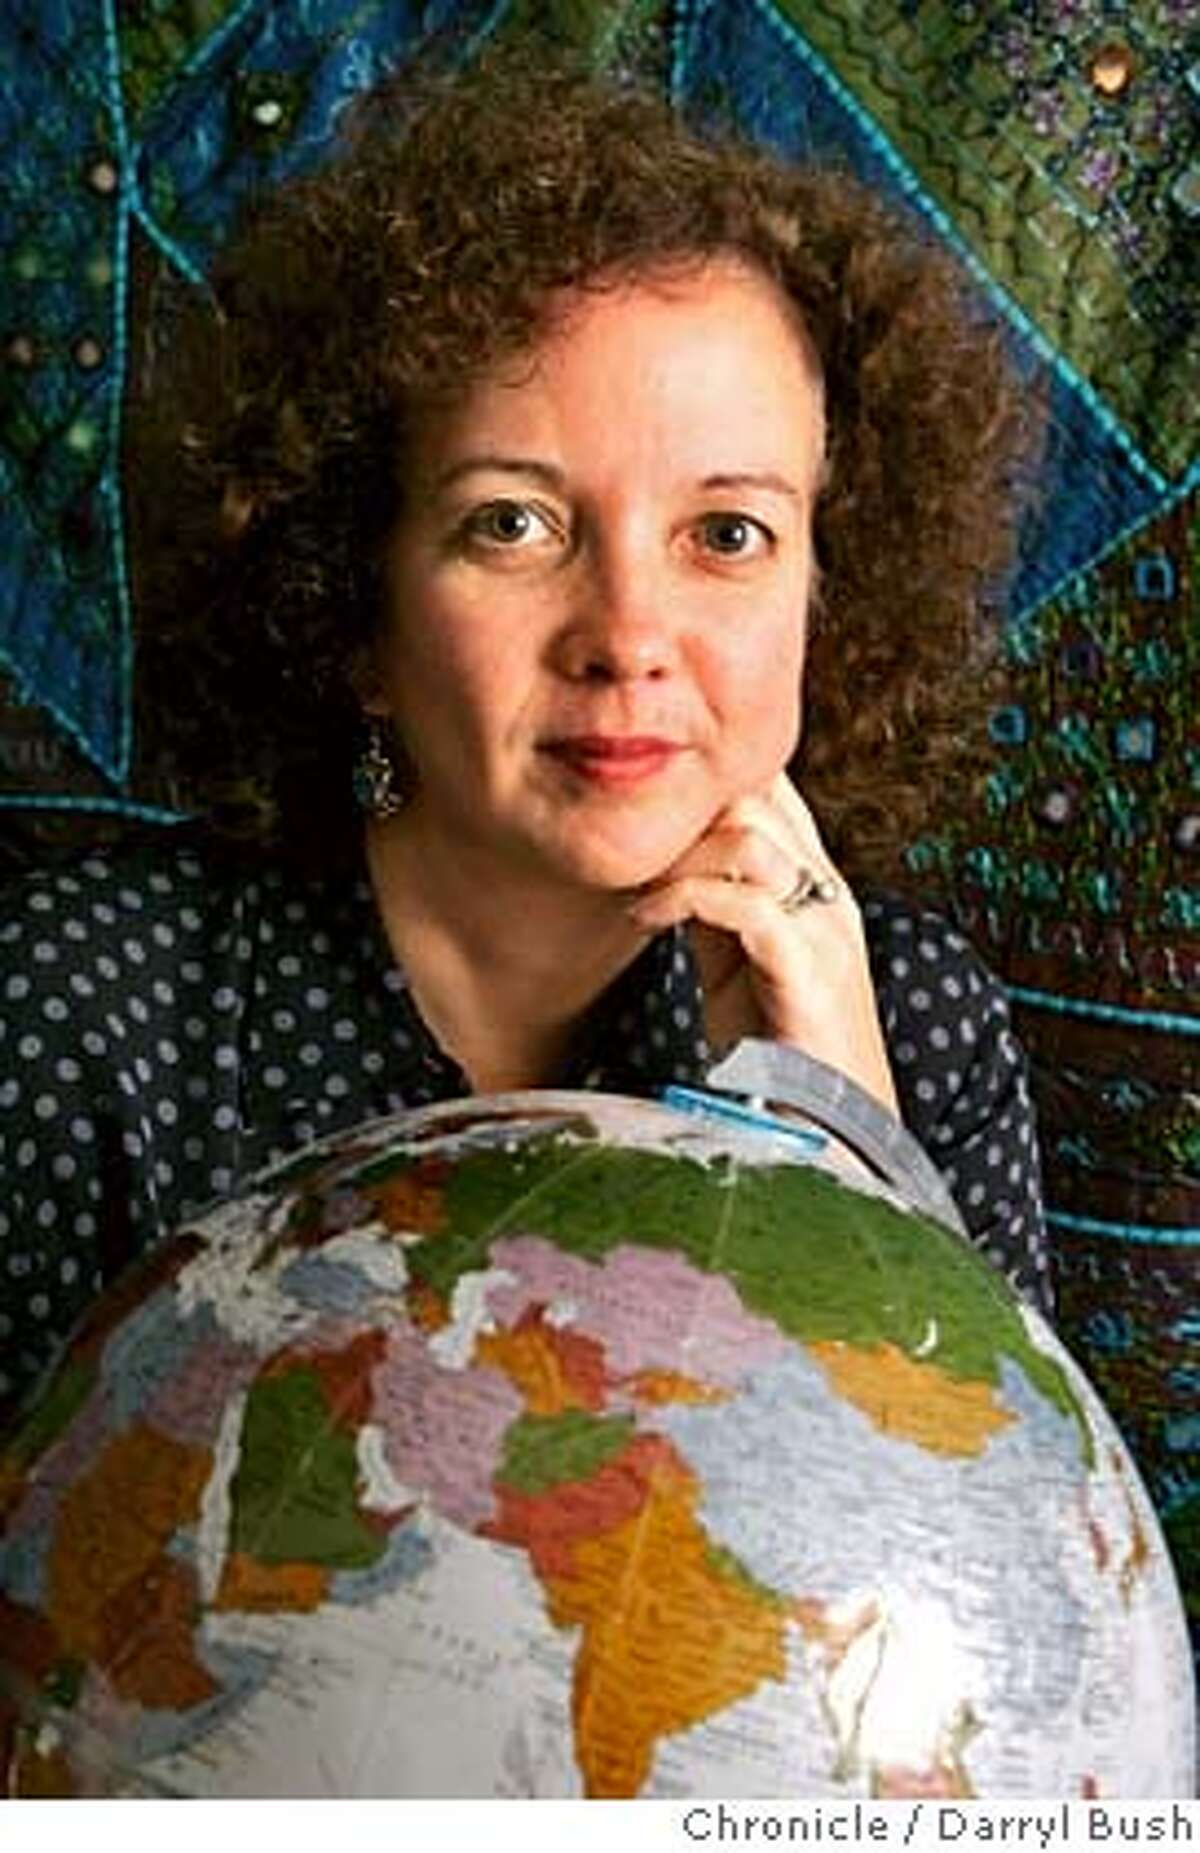 genius19_0002_db.JPG Dr. Victoria Hale, Founder & CEO of OneWorld Health sits near a globe at her office headquarters in San Francisco, CA on Friday, September 15, 2006. 9/15/06 Darryl Bush / The Chronicle ** (cq) MANDATORY CREDIT FOR PHOTOG AND SF CHRONICLE/ -MAGS OUT